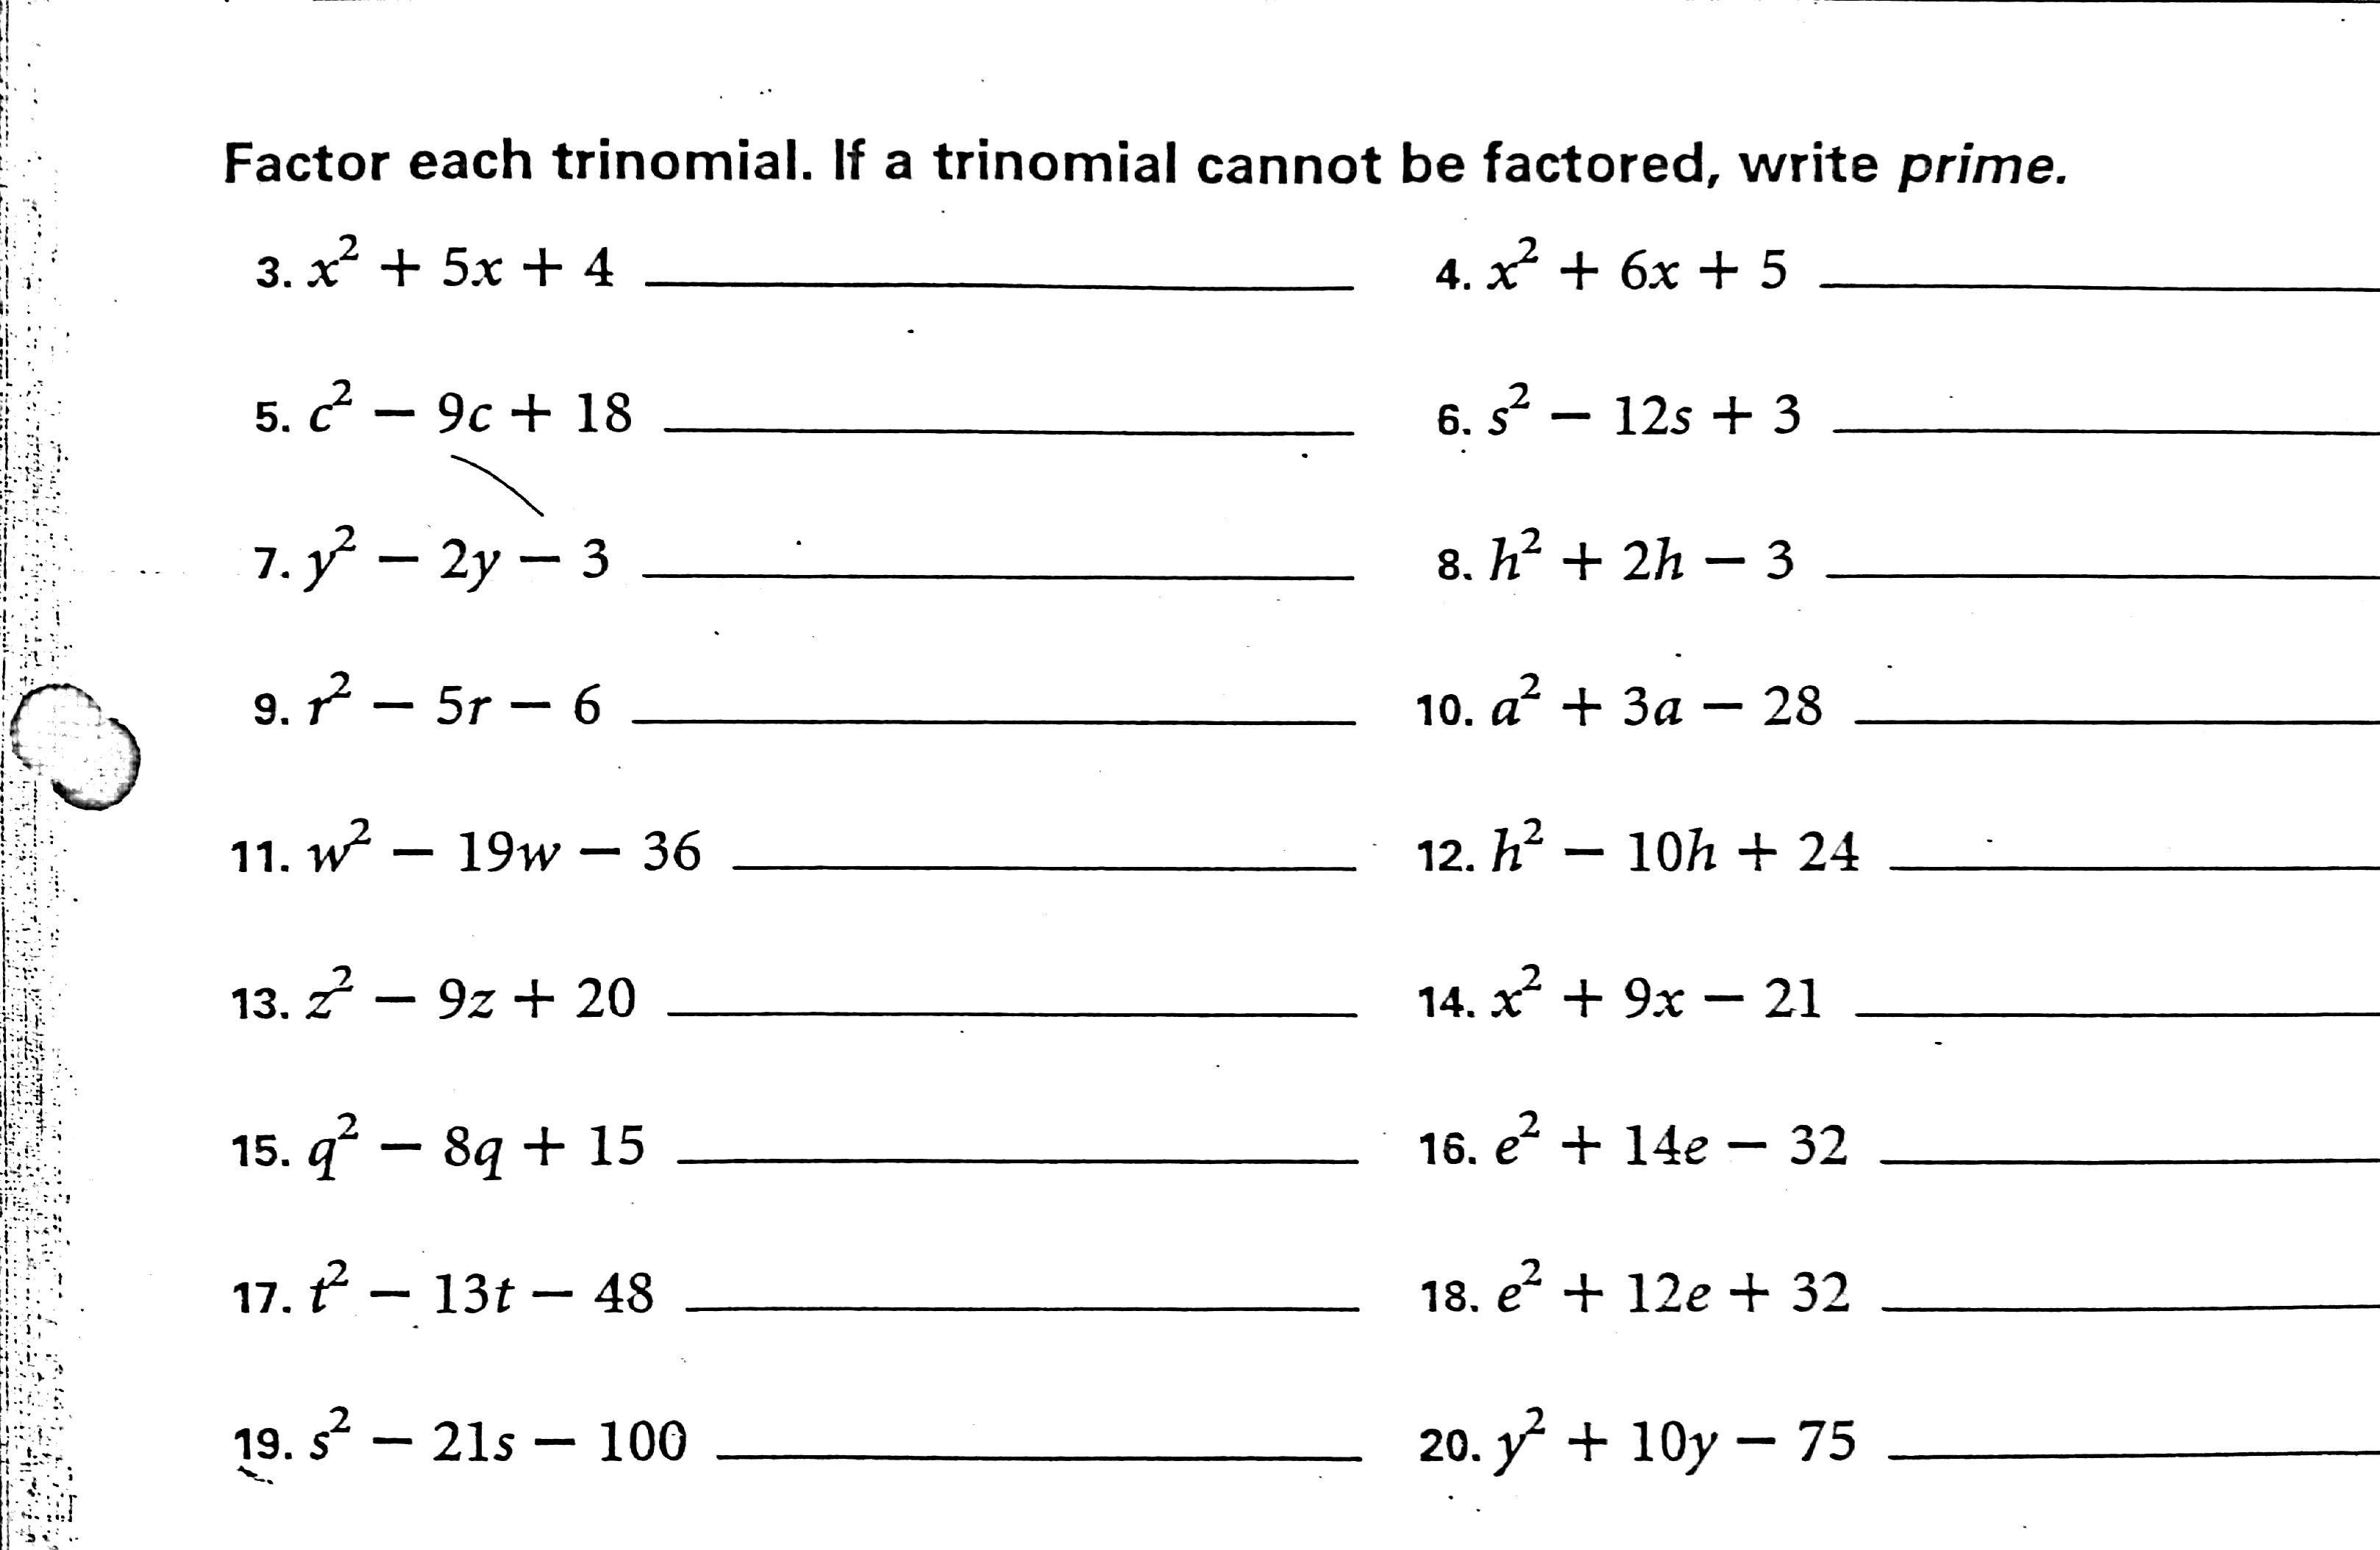 Proatmealus  Wonderful Factoring Worksheet  Delwfgcom With Glamorous Factoring Polynomials Practice Worksheet With Answers Coterraneo With Comely Season Worksheets For Kindergarten Also English Made Easy Worksheets In Addition Area And Perimeter Rd Grade Worksheets And Life Cycle Of A Seed Worksheet As Well As Subtraction Within  Worksheets Additionally Nouns Pronouns Verbs Adverbs Adjectives Worksheet From Delwfgcom With Proatmealus  Glamorous Factoring Worksheet  Delwfgcom With Comely Factoring Polynomials Practice Worksheet With Answers Coterraneo And Wonderful Season Worksheets For Kindergarten Also English Made Easy Worksheets In Addition Area And Perimeter Rd Grade Worksheets From Delwfgcom